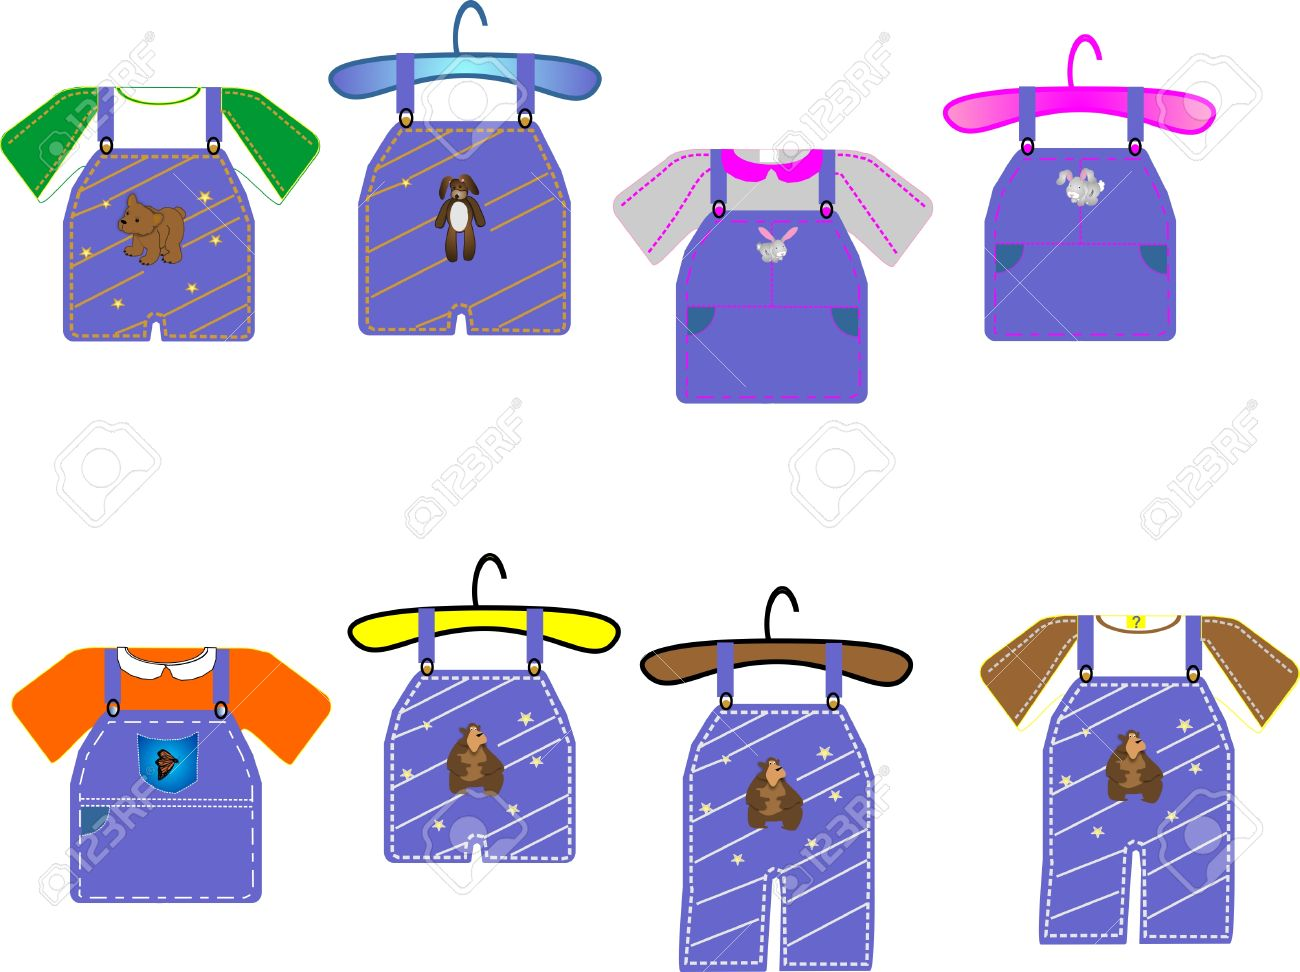 clothes for kids clipart - Clipground